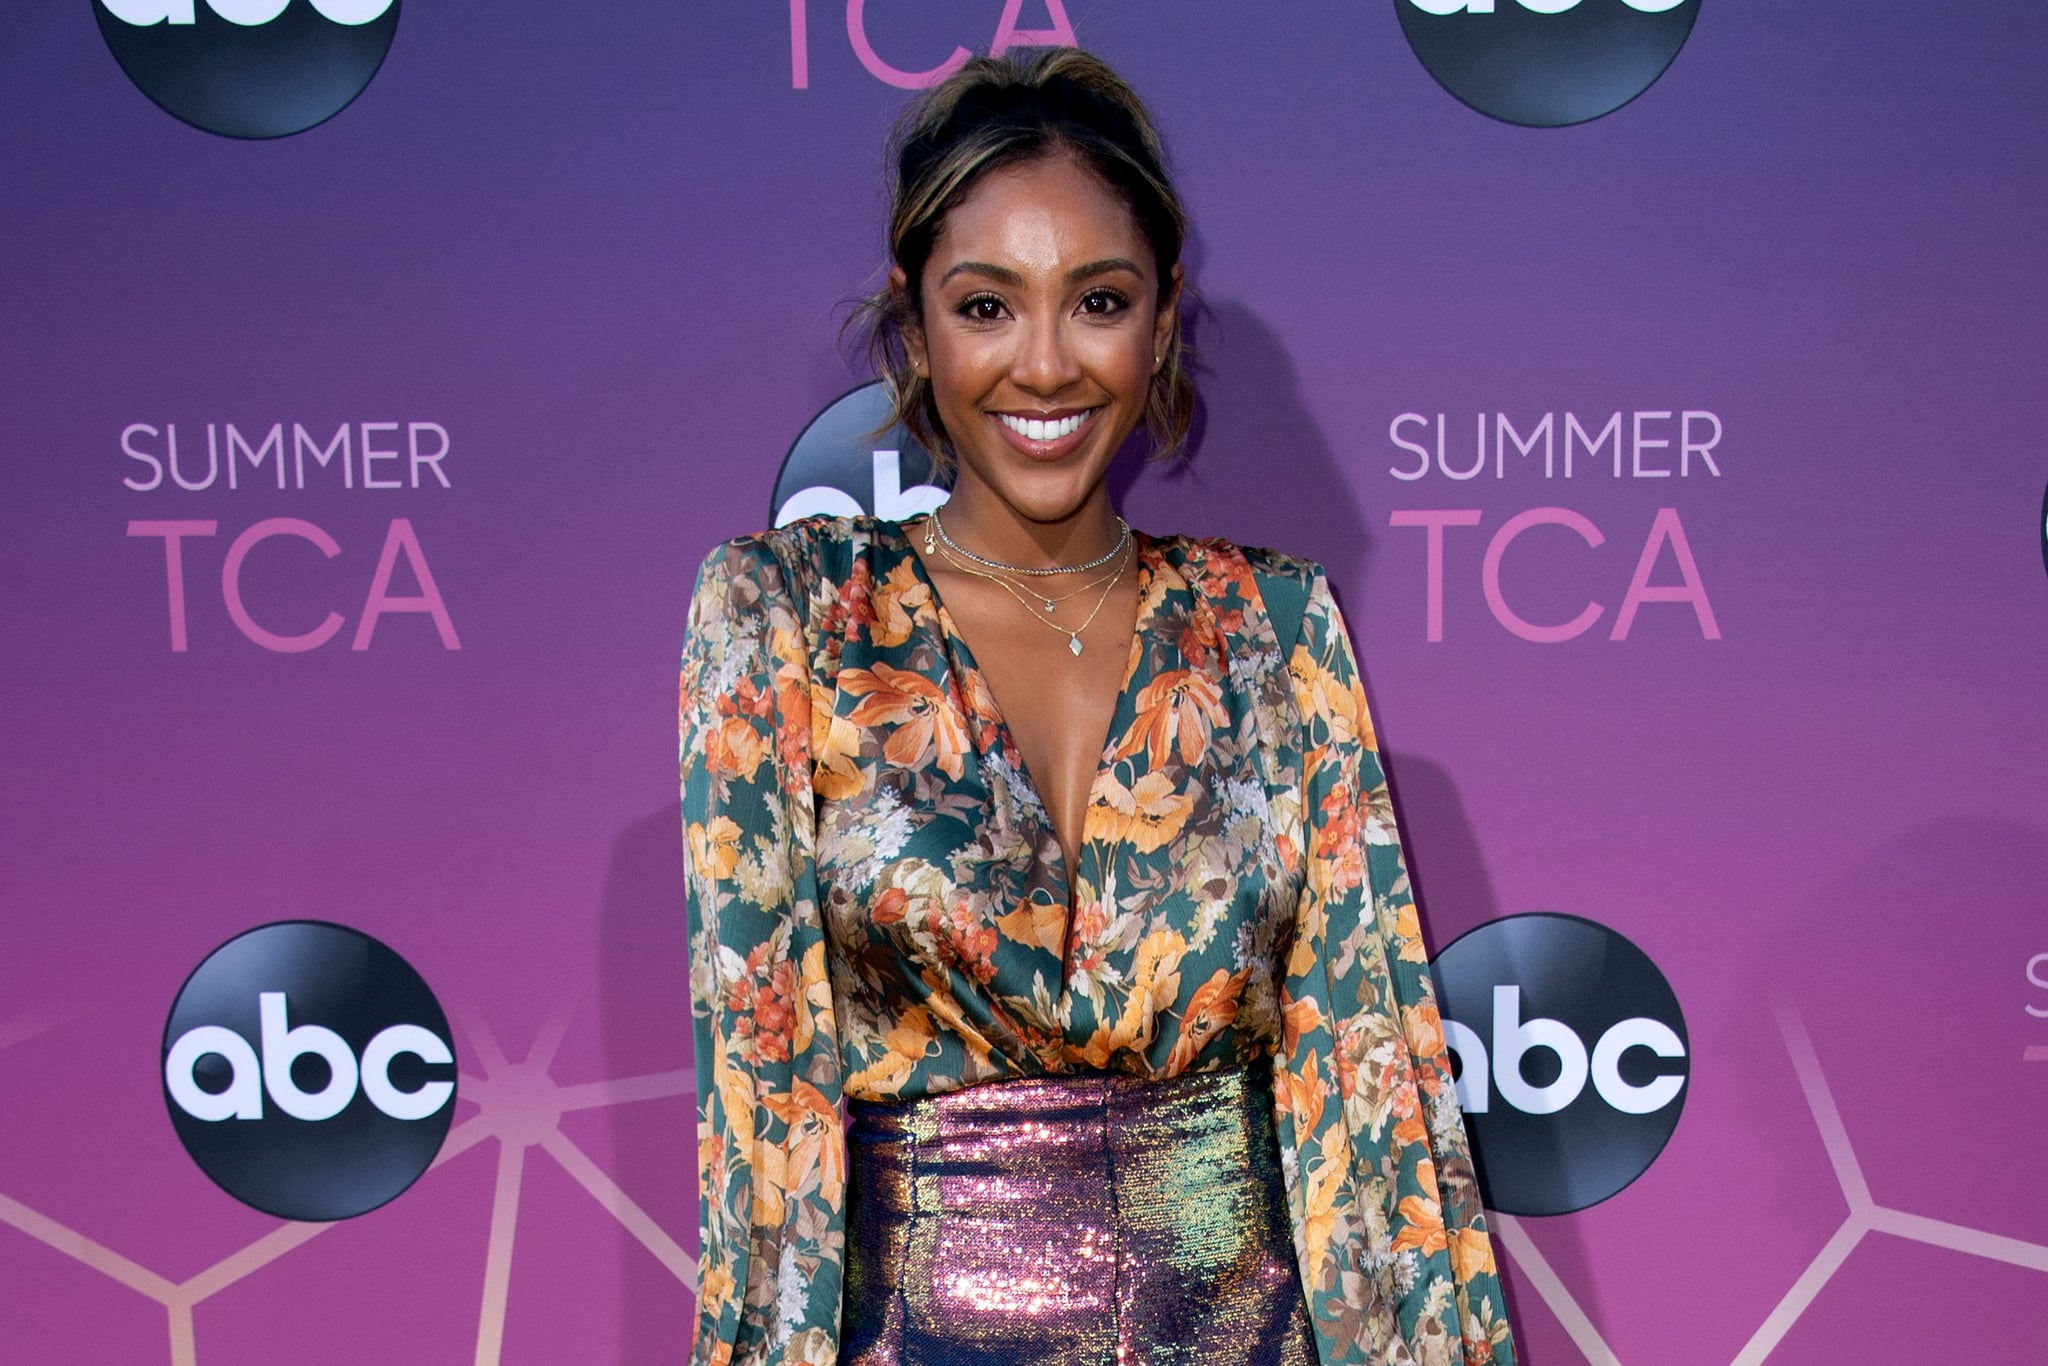 TV reality star Tayshia Adams attends the ABC